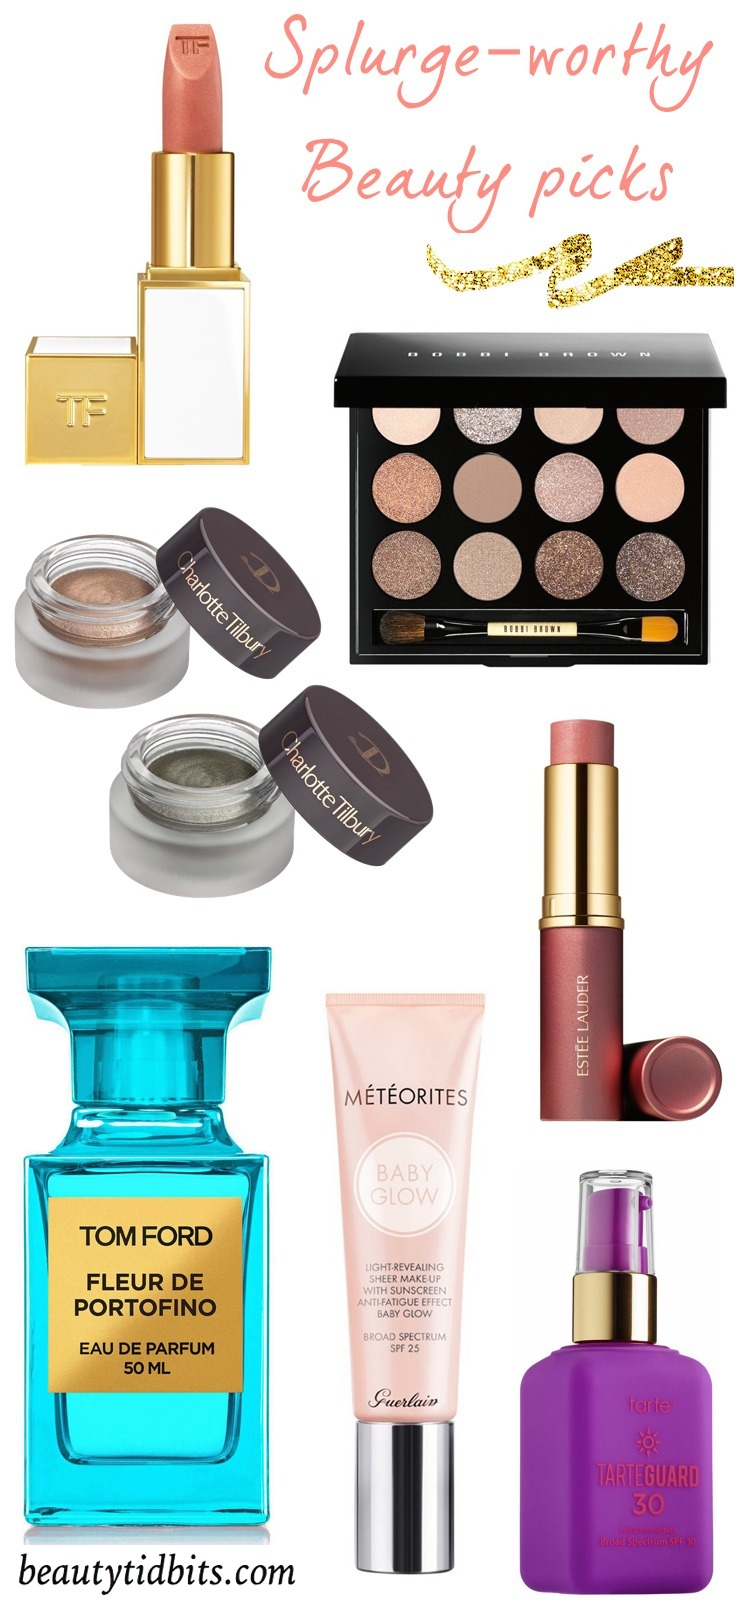 Splurge-worthy beauty products for spring/summer